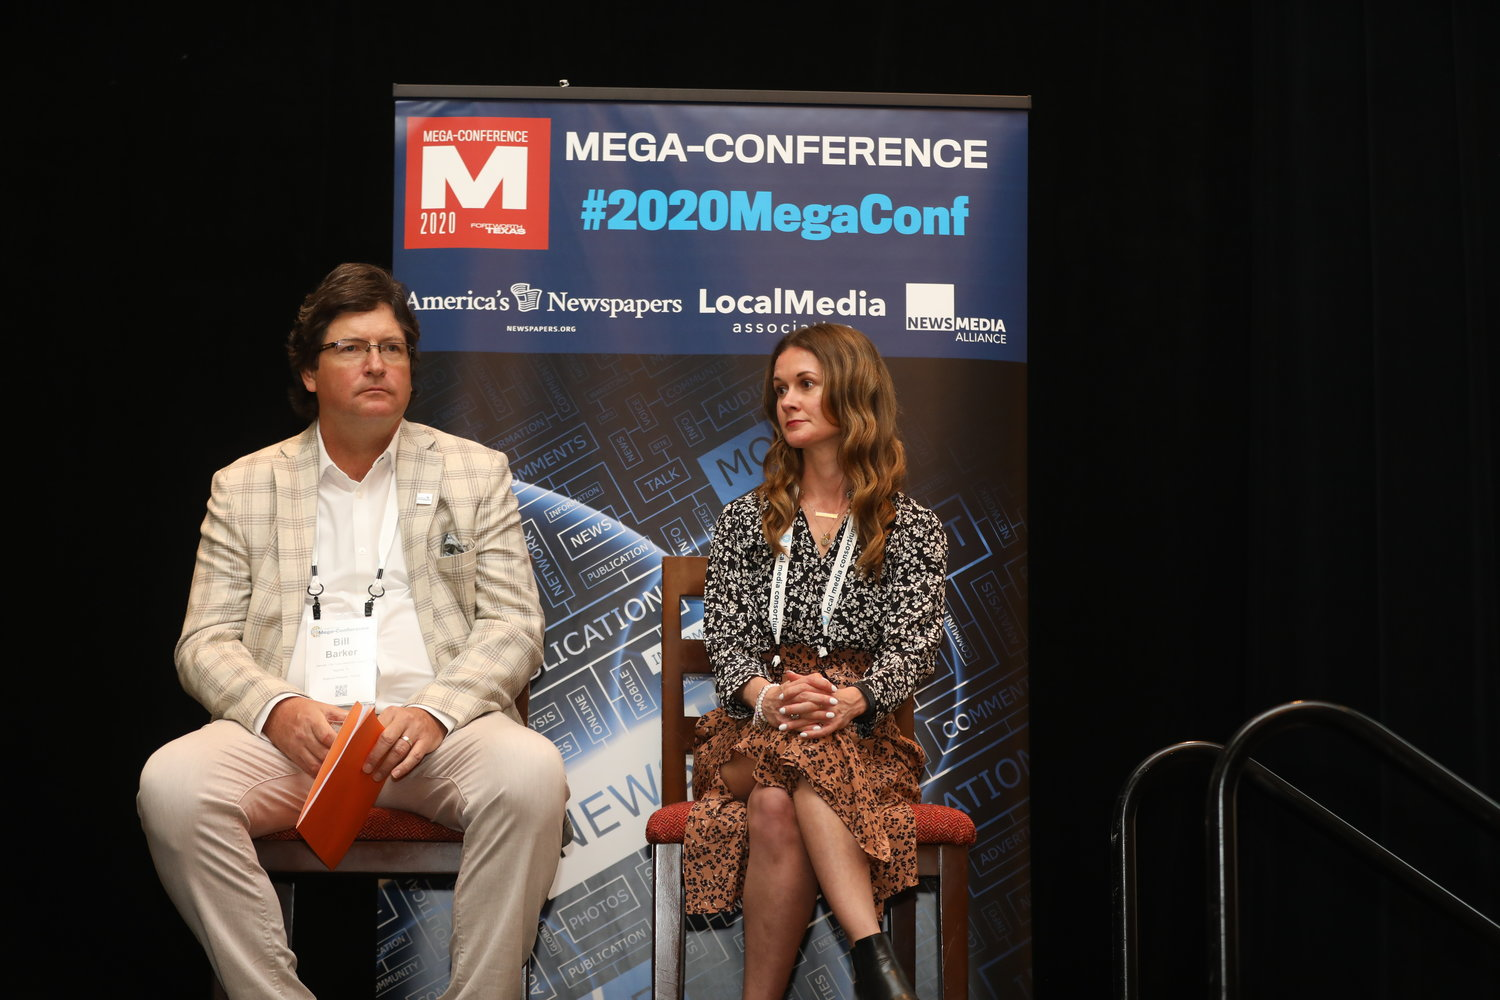 Bill Barker and Jessica Baldwin at the 2020 Mega-Conference. (Photo by Bob Booth)